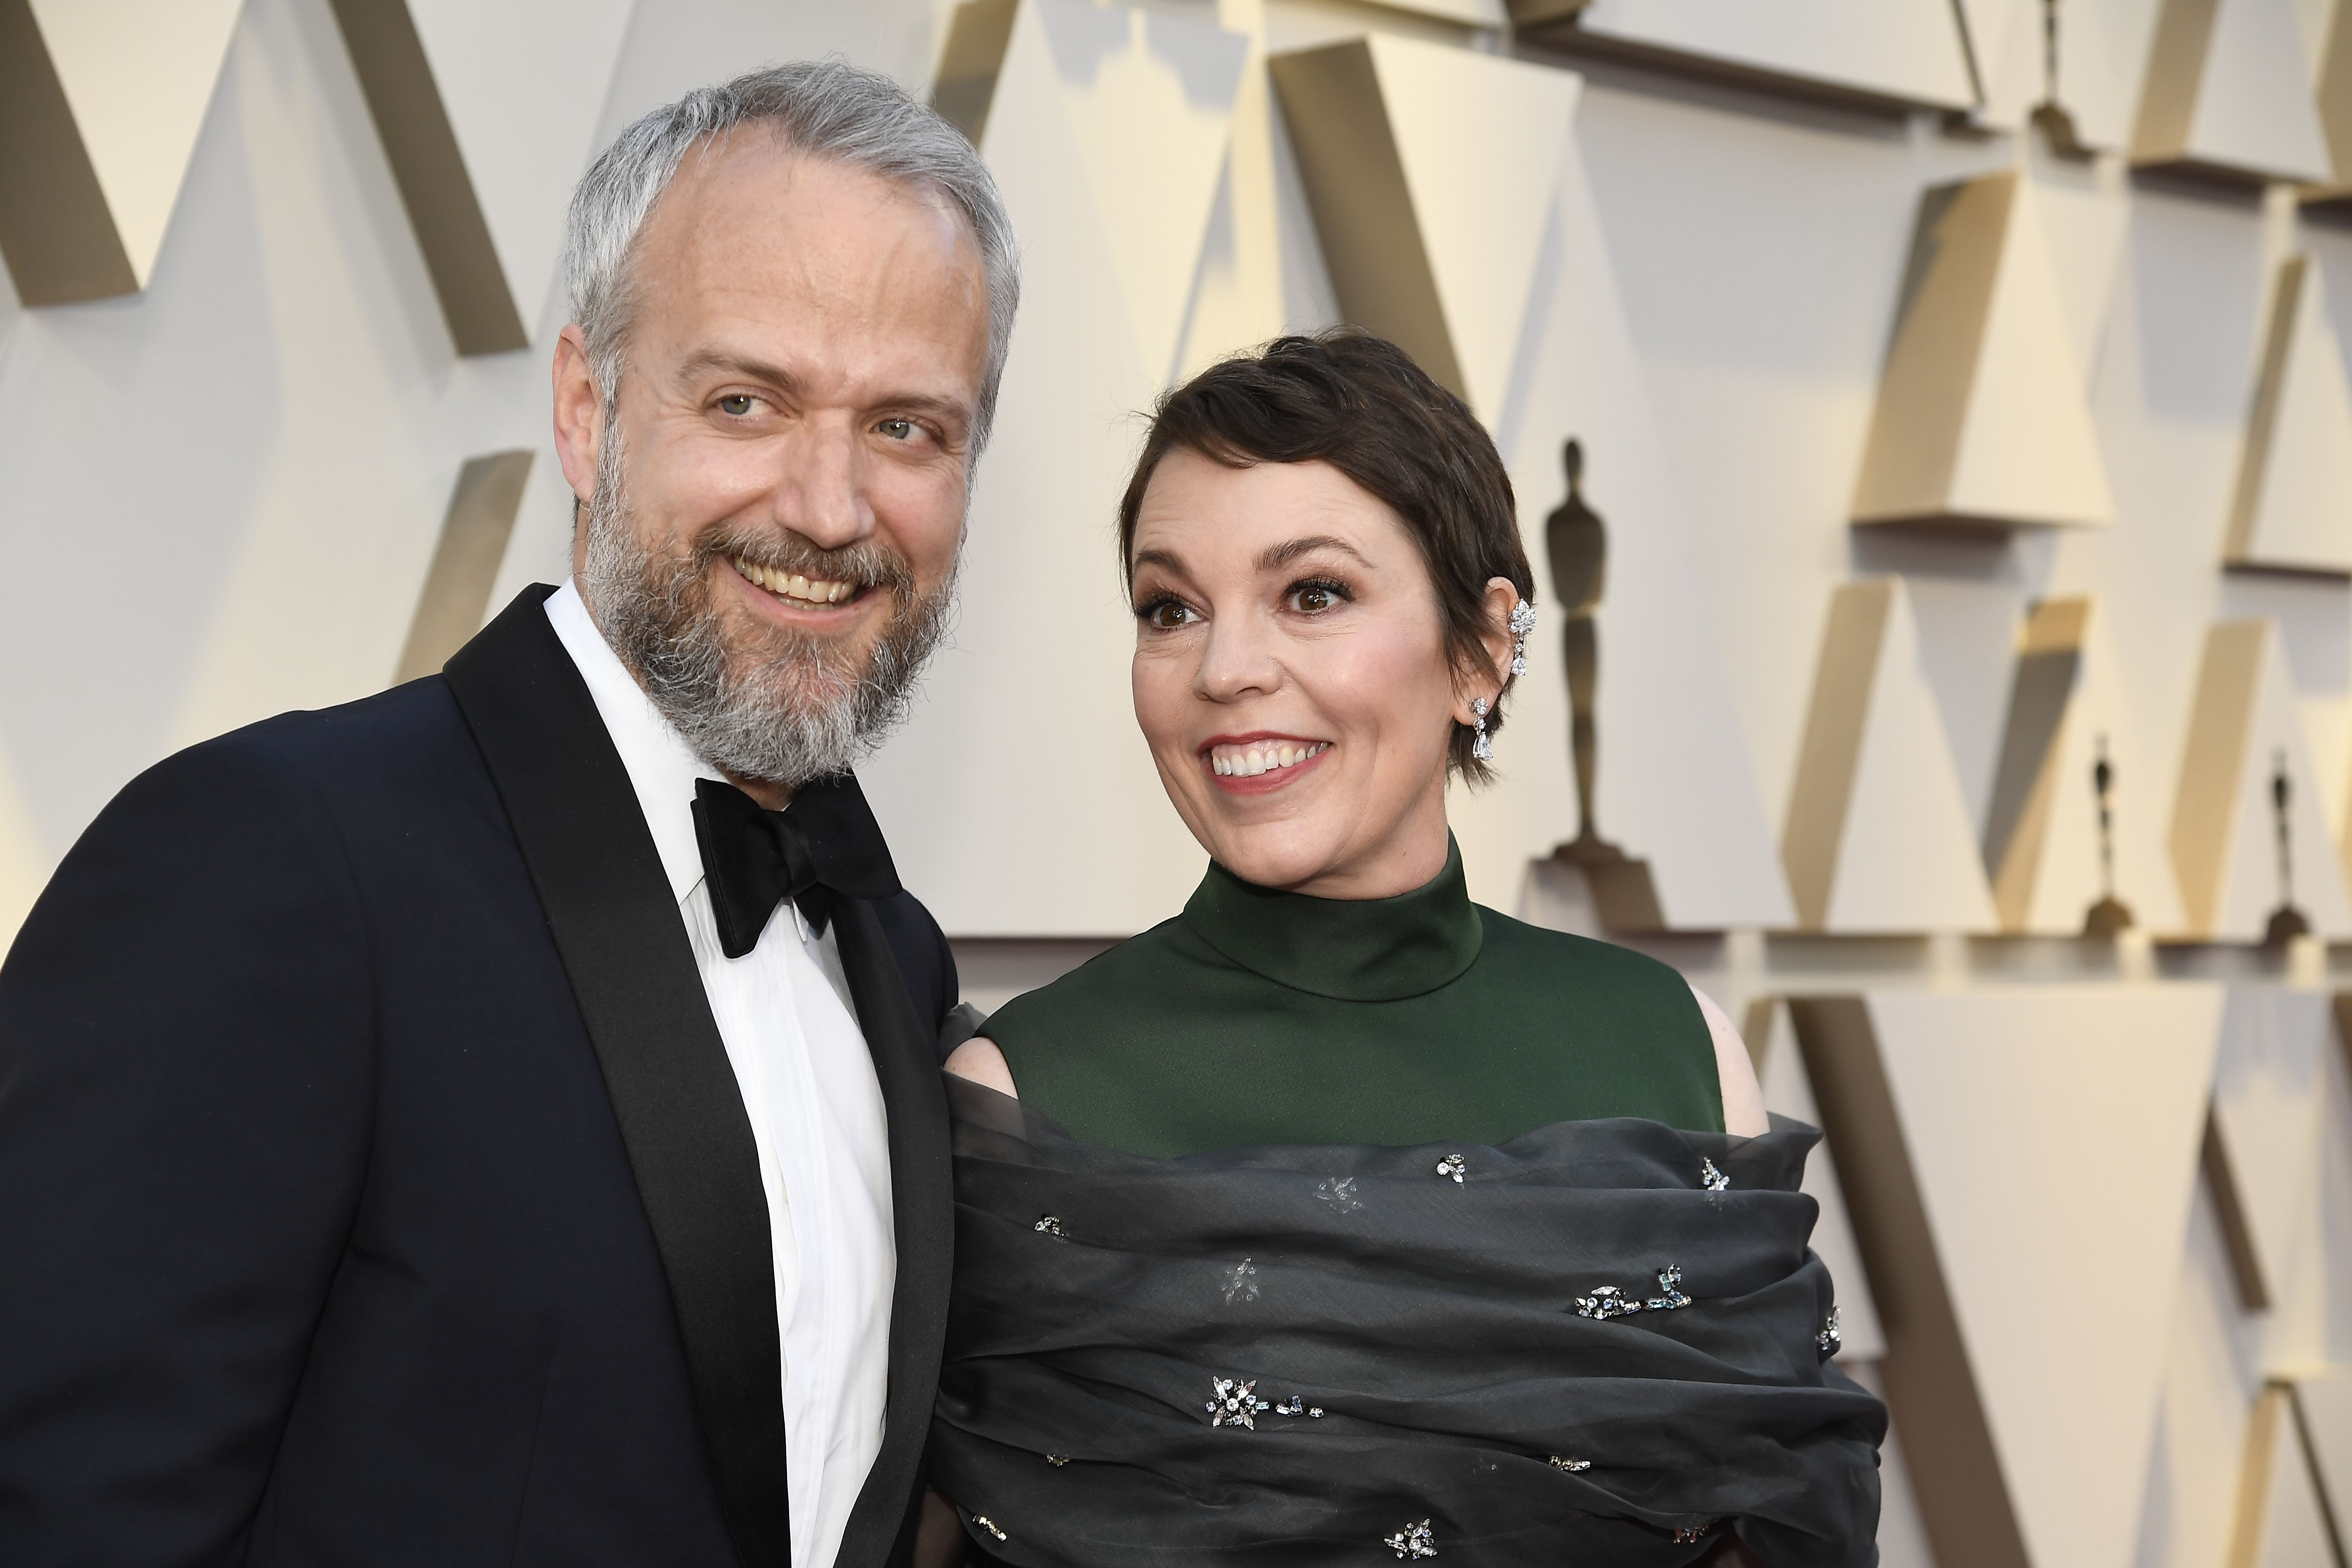 Olivia Colman says her husband stole some toilet roll from Buckingham Palace